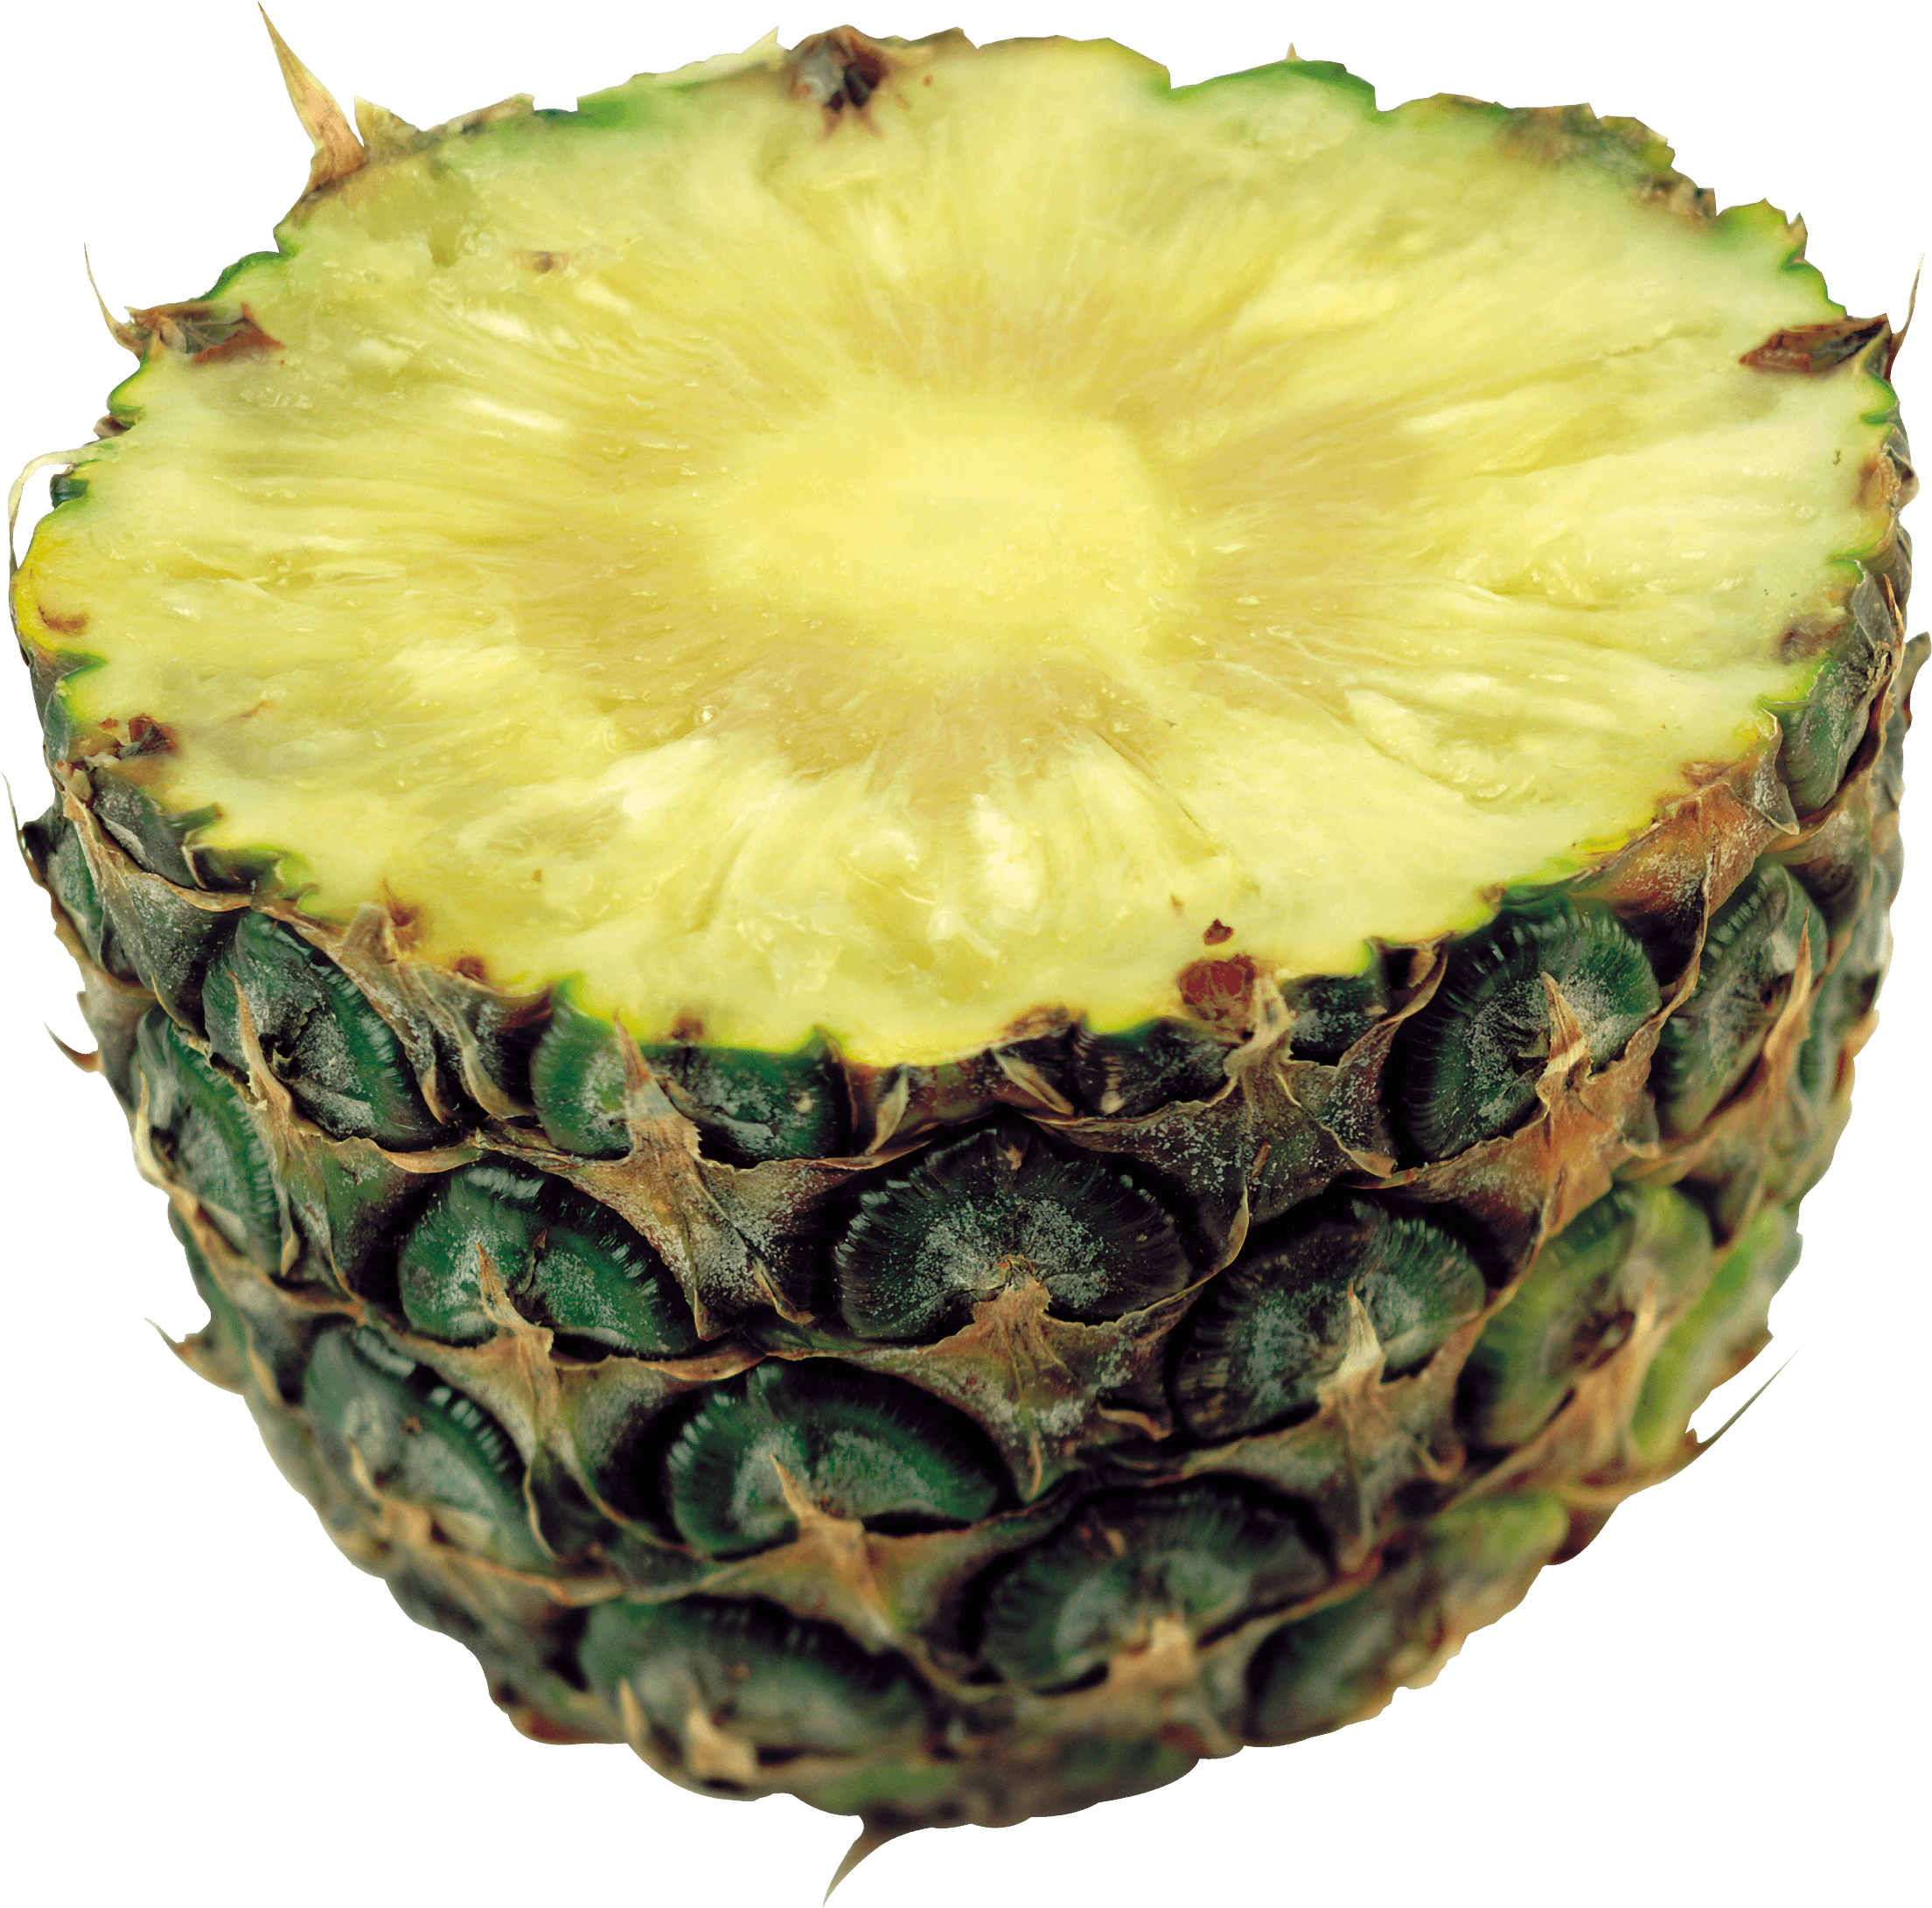 Half Pineapple Png Image PNG Image